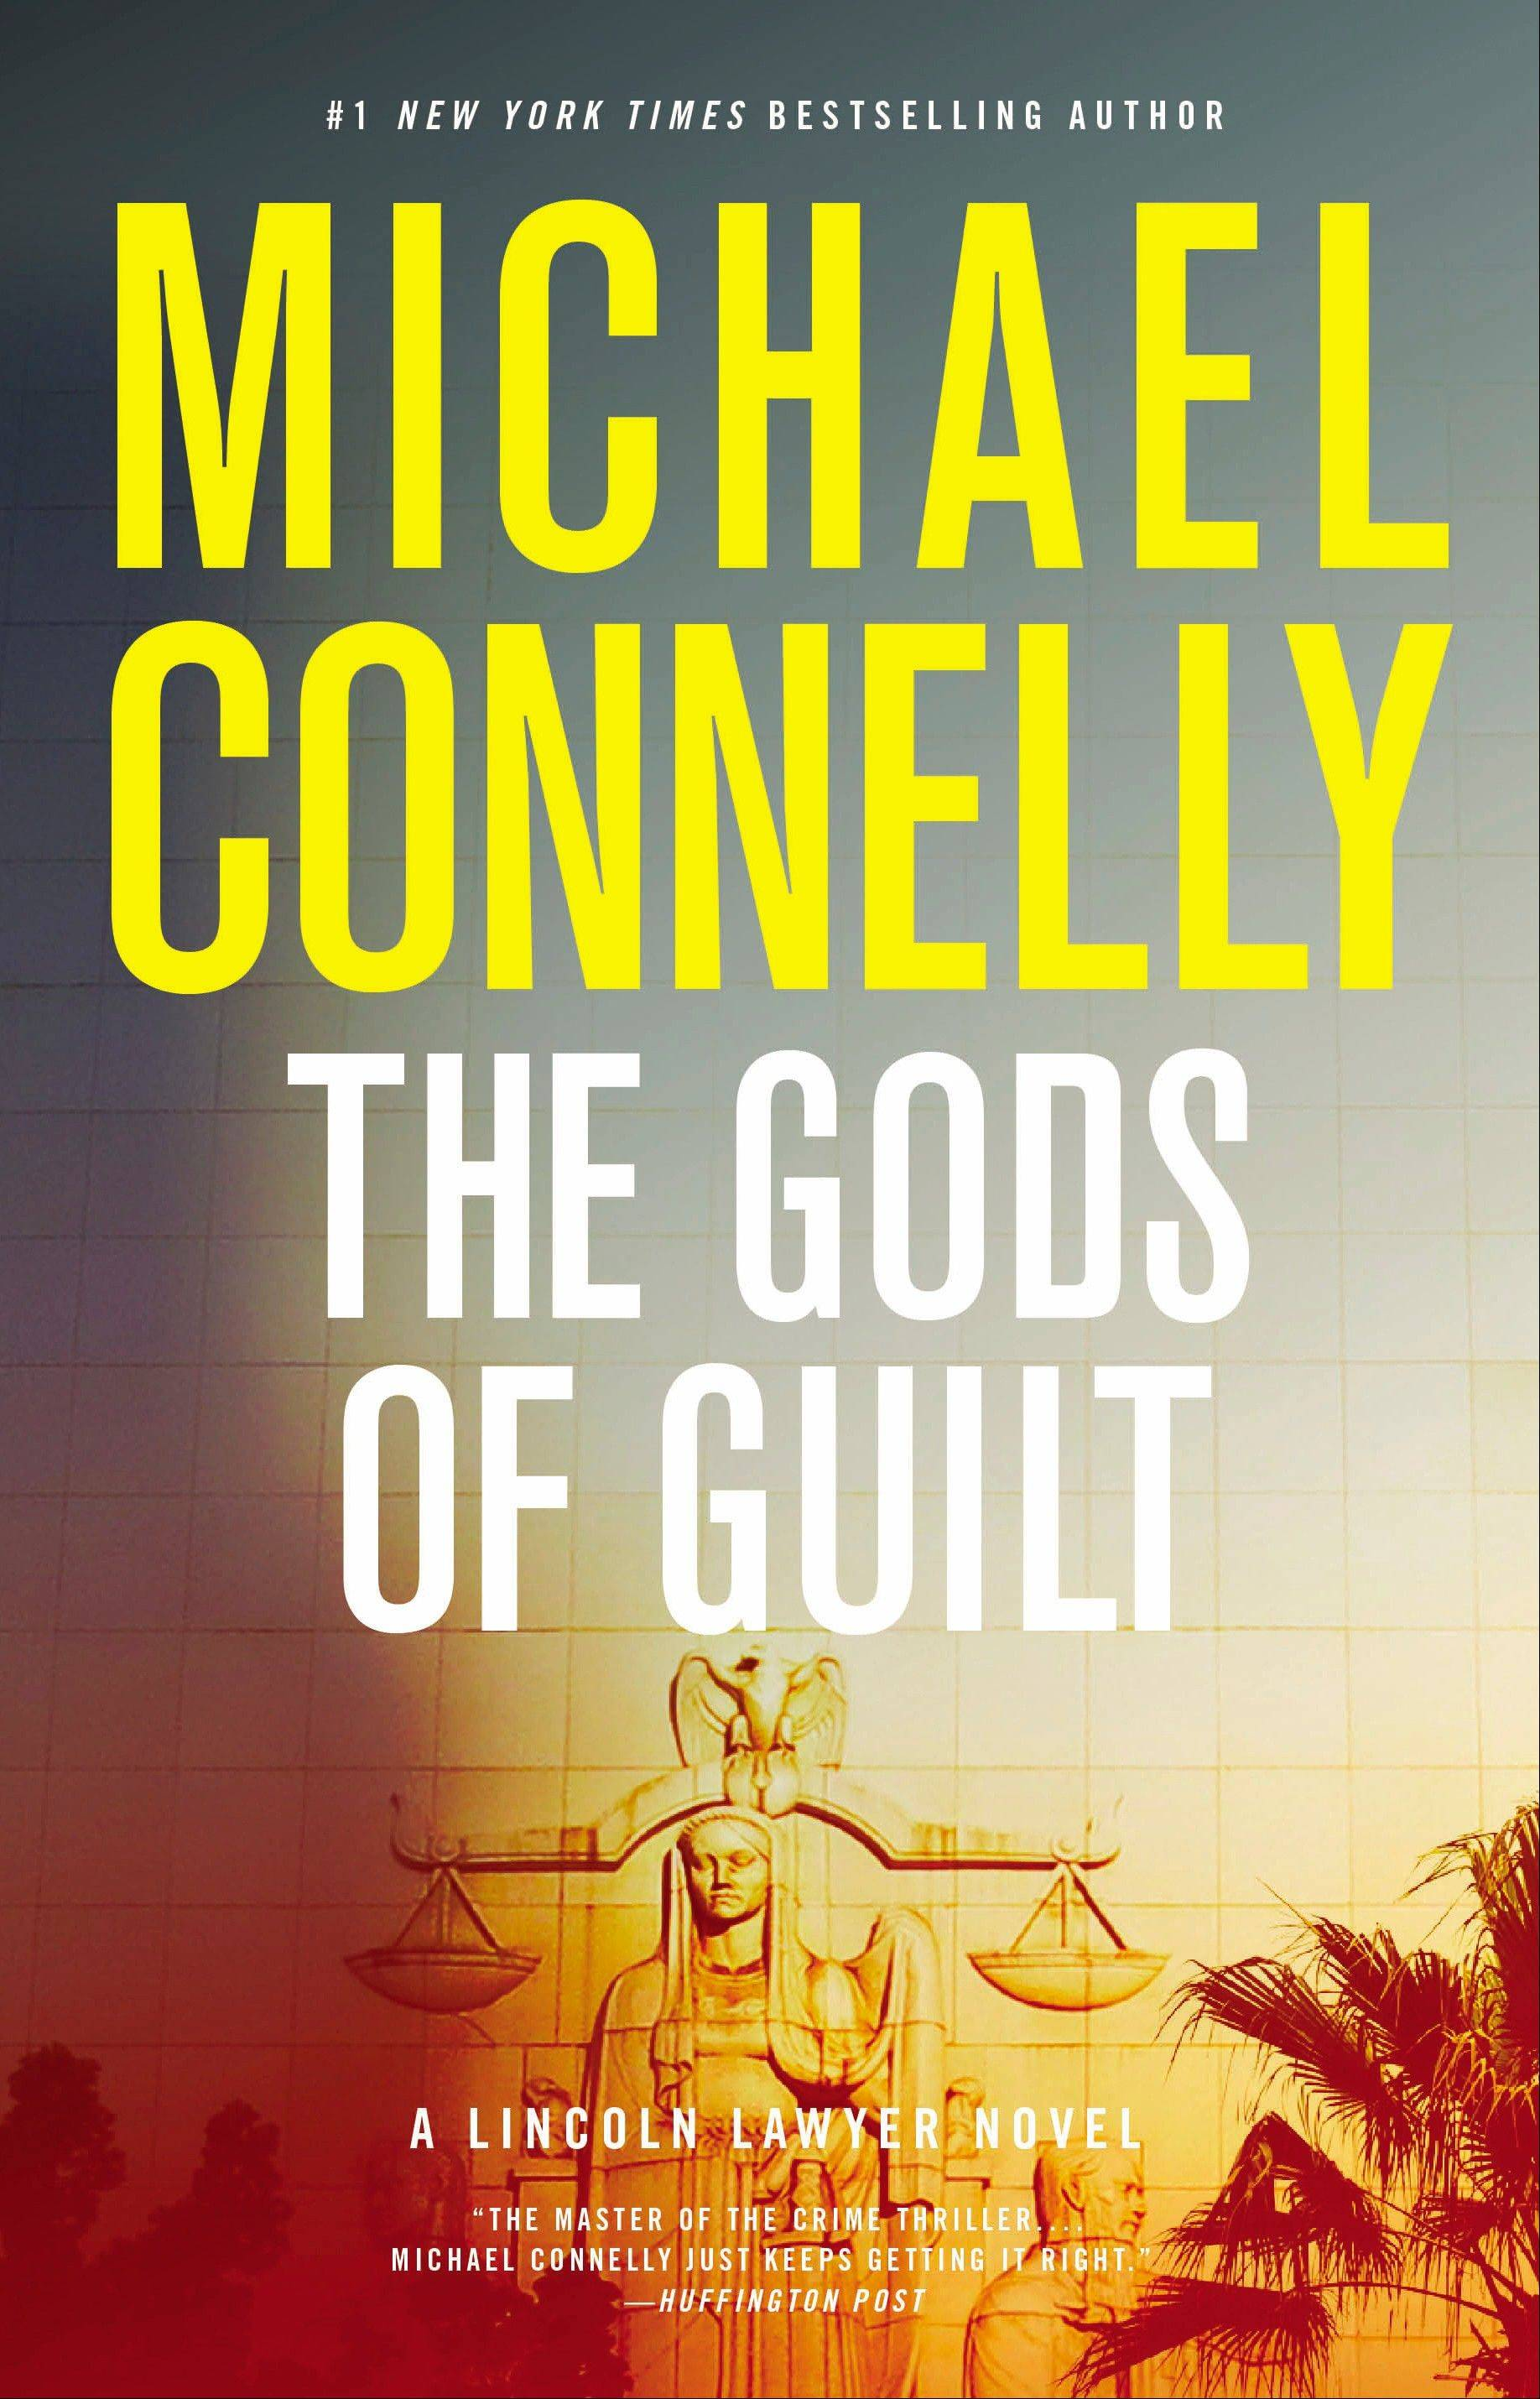 """The Gods of Guilt"" is Michael Connelly's latest book starring lawyer Mickey Haller."